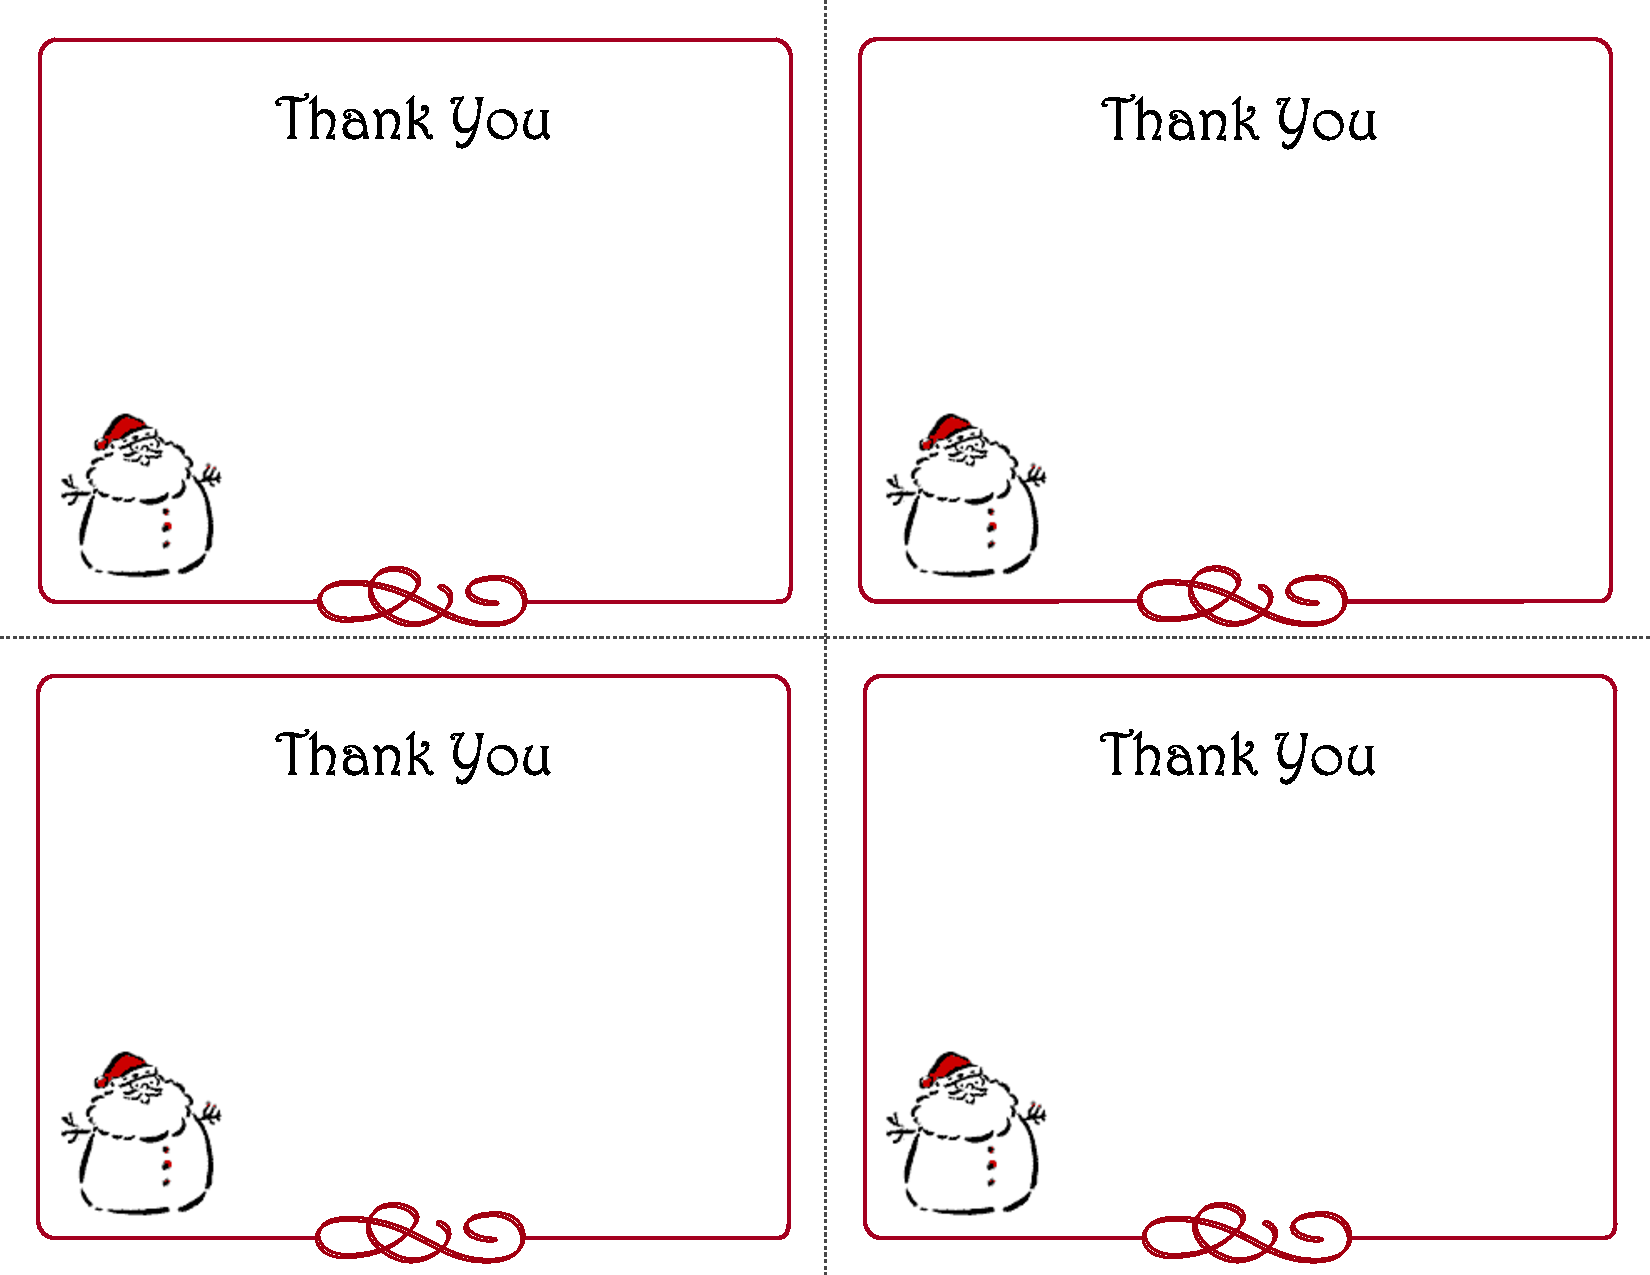 6 Images of Thank You Free Printable Templates